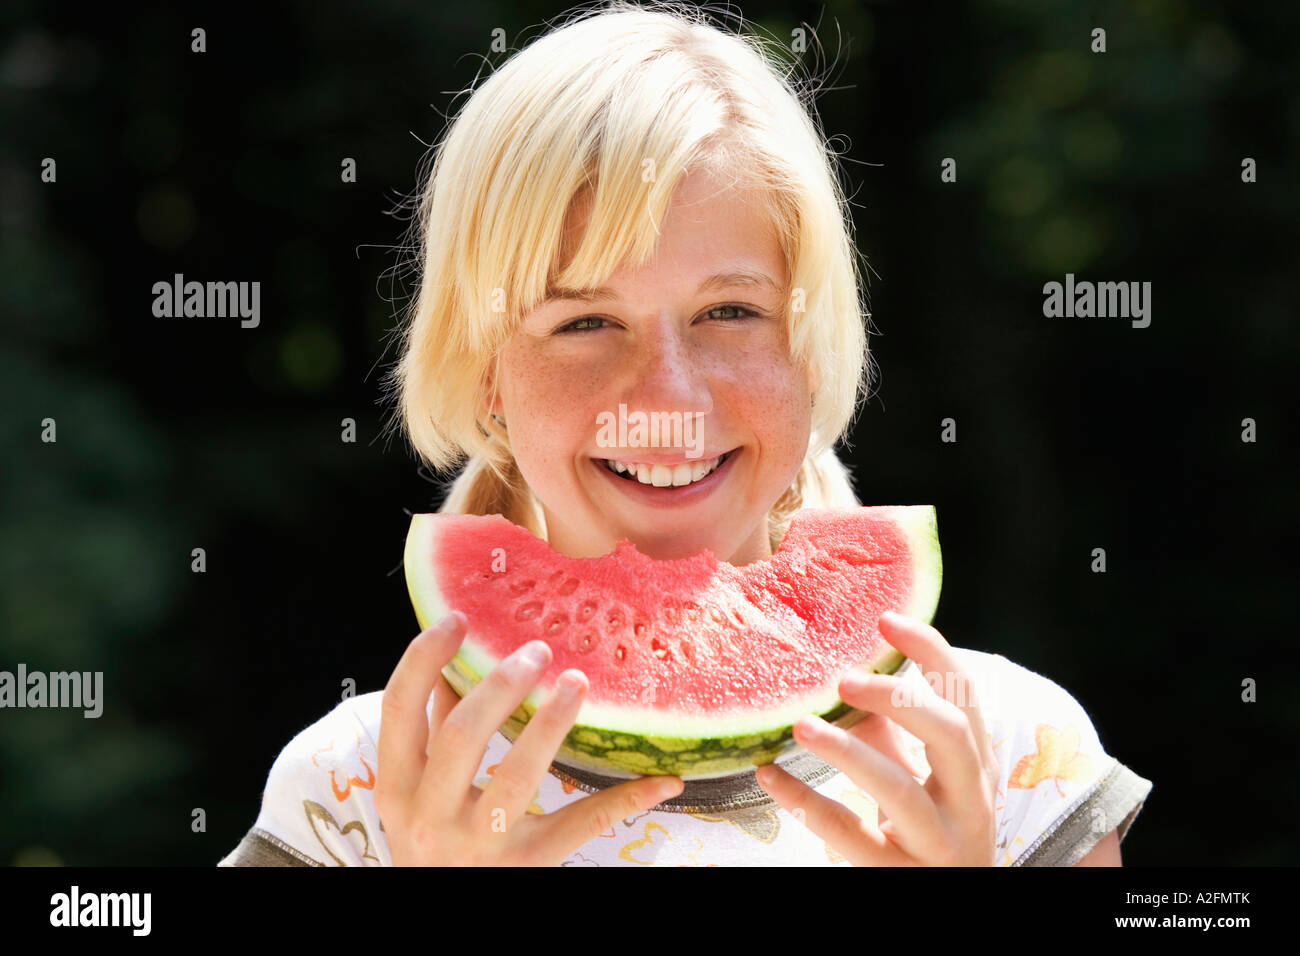 Teenage girl (13-15) eating watermelon, close-up, portrait - Stock Image